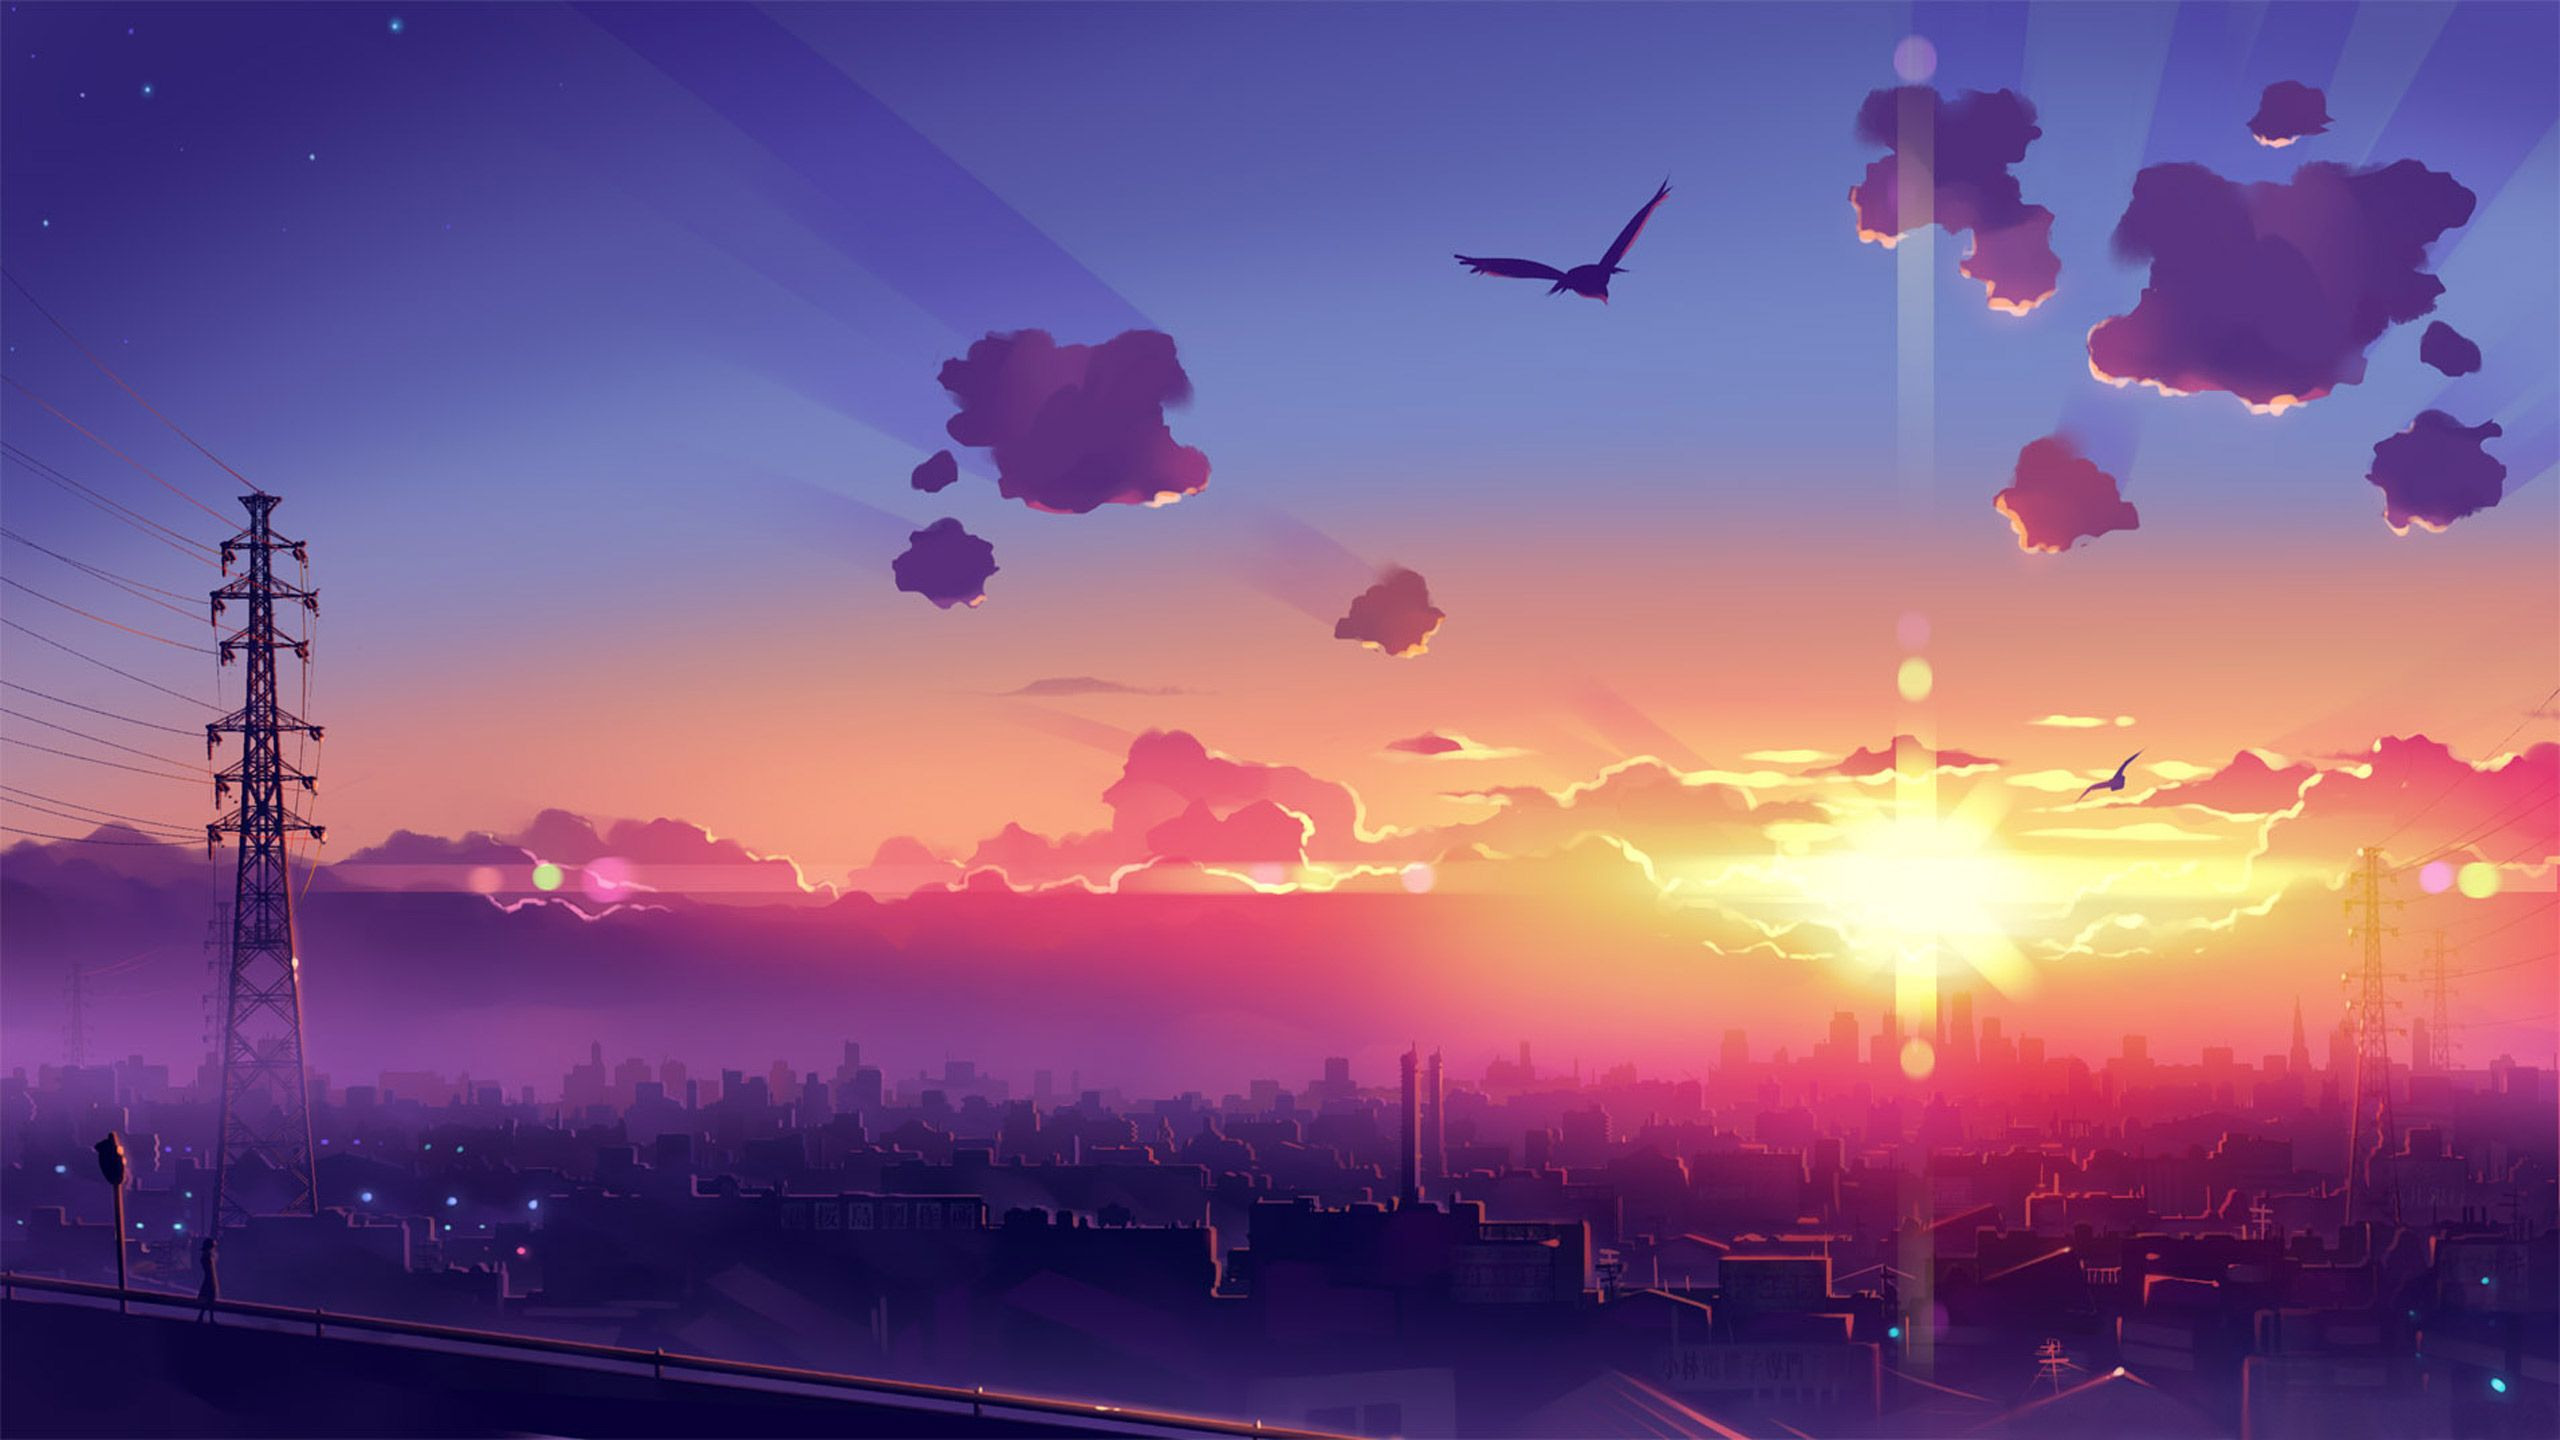 Free Anime Sunset Scenery Artwork Computer Desktop Wallpapers Pictures Images